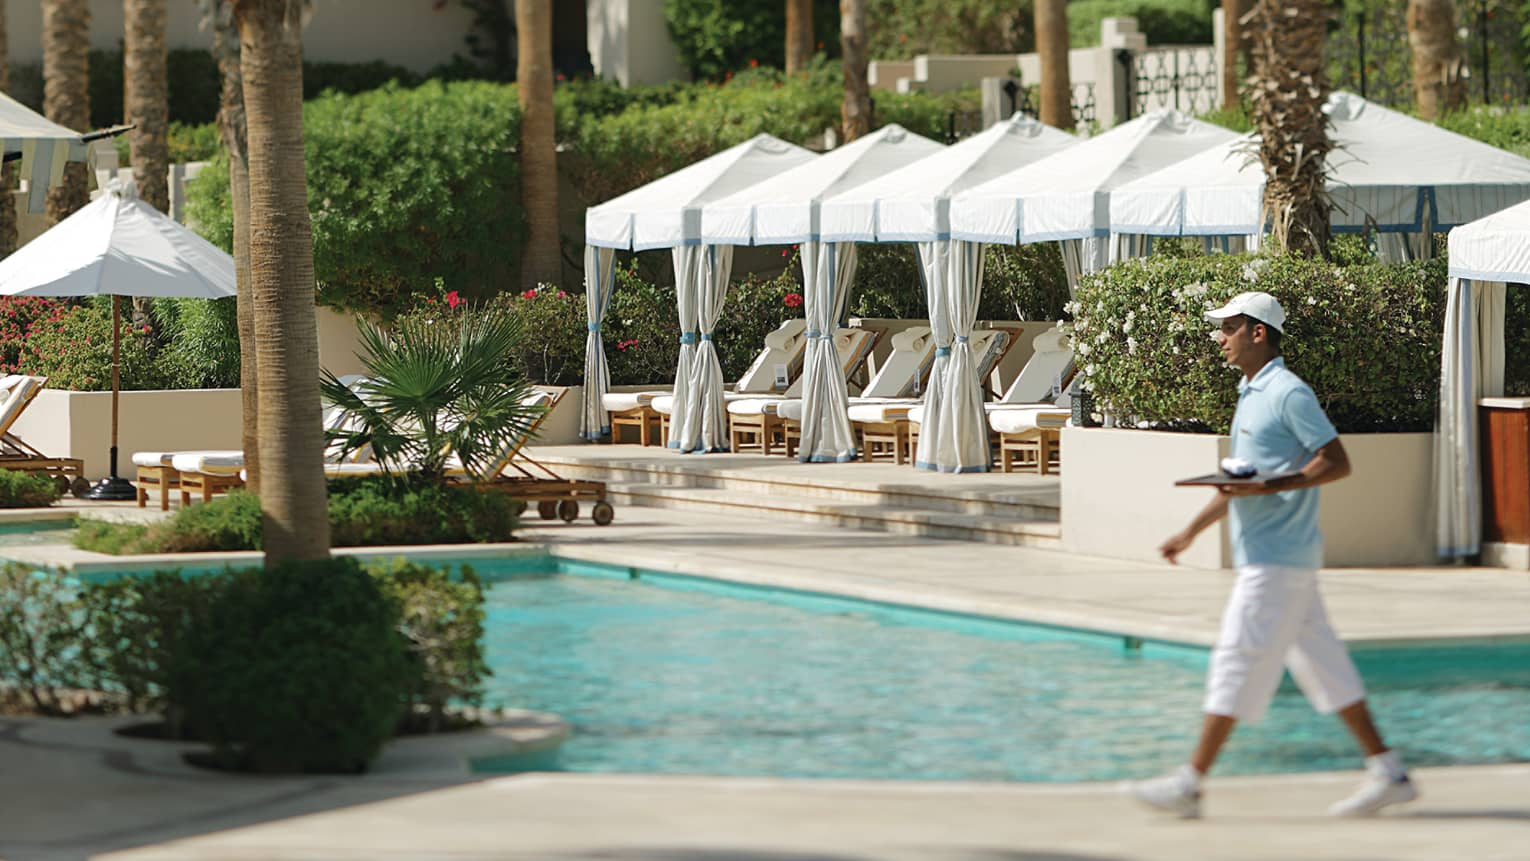 Server in uniform carries tray past outdoor swimming pool, white cabanas on sunny patio in background